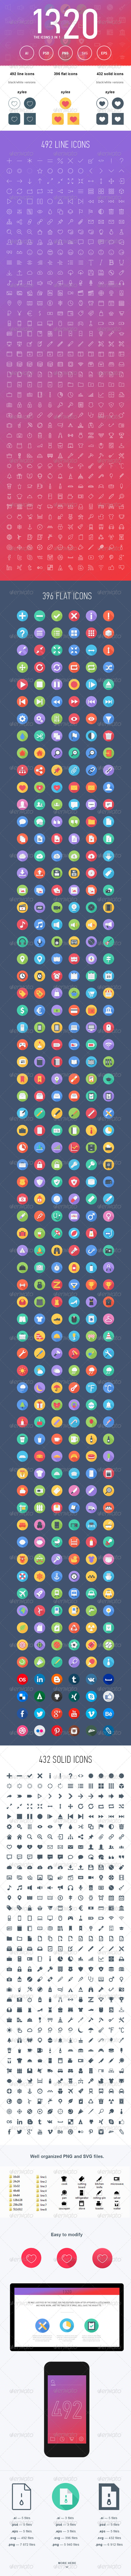 The Icons 3in1 1320 - Web Icons